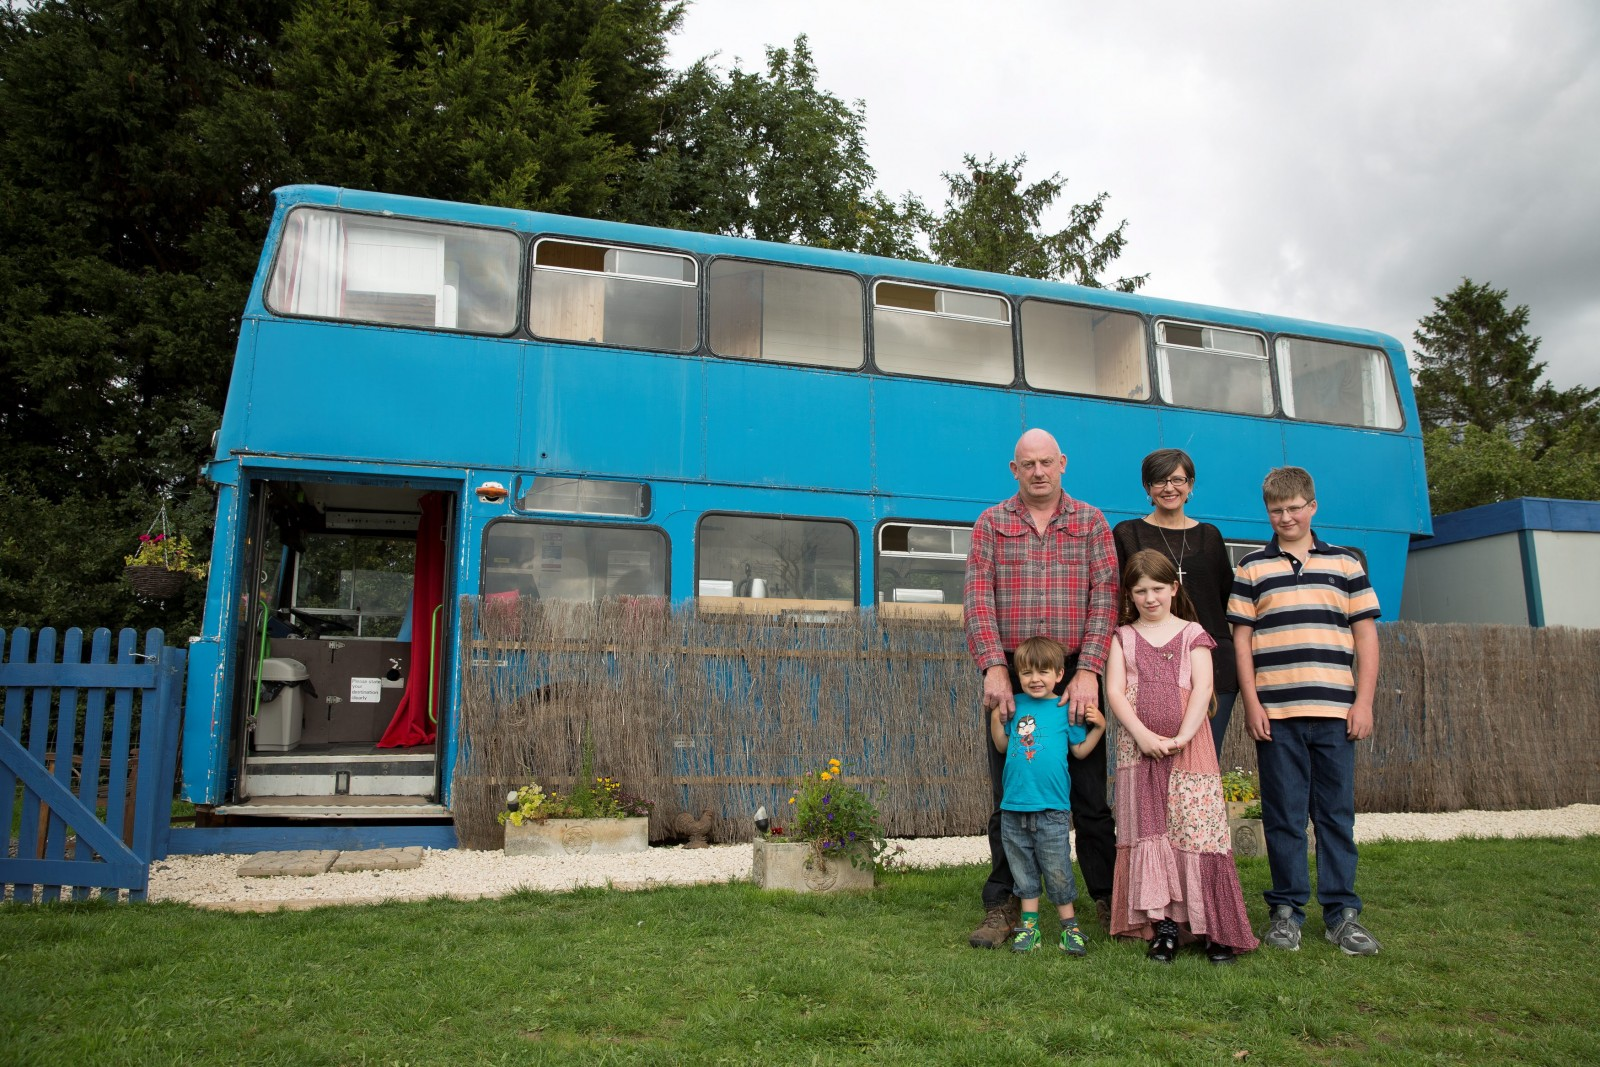 Family convert double-decker into dream holiday home because they didn't fit in a caravan